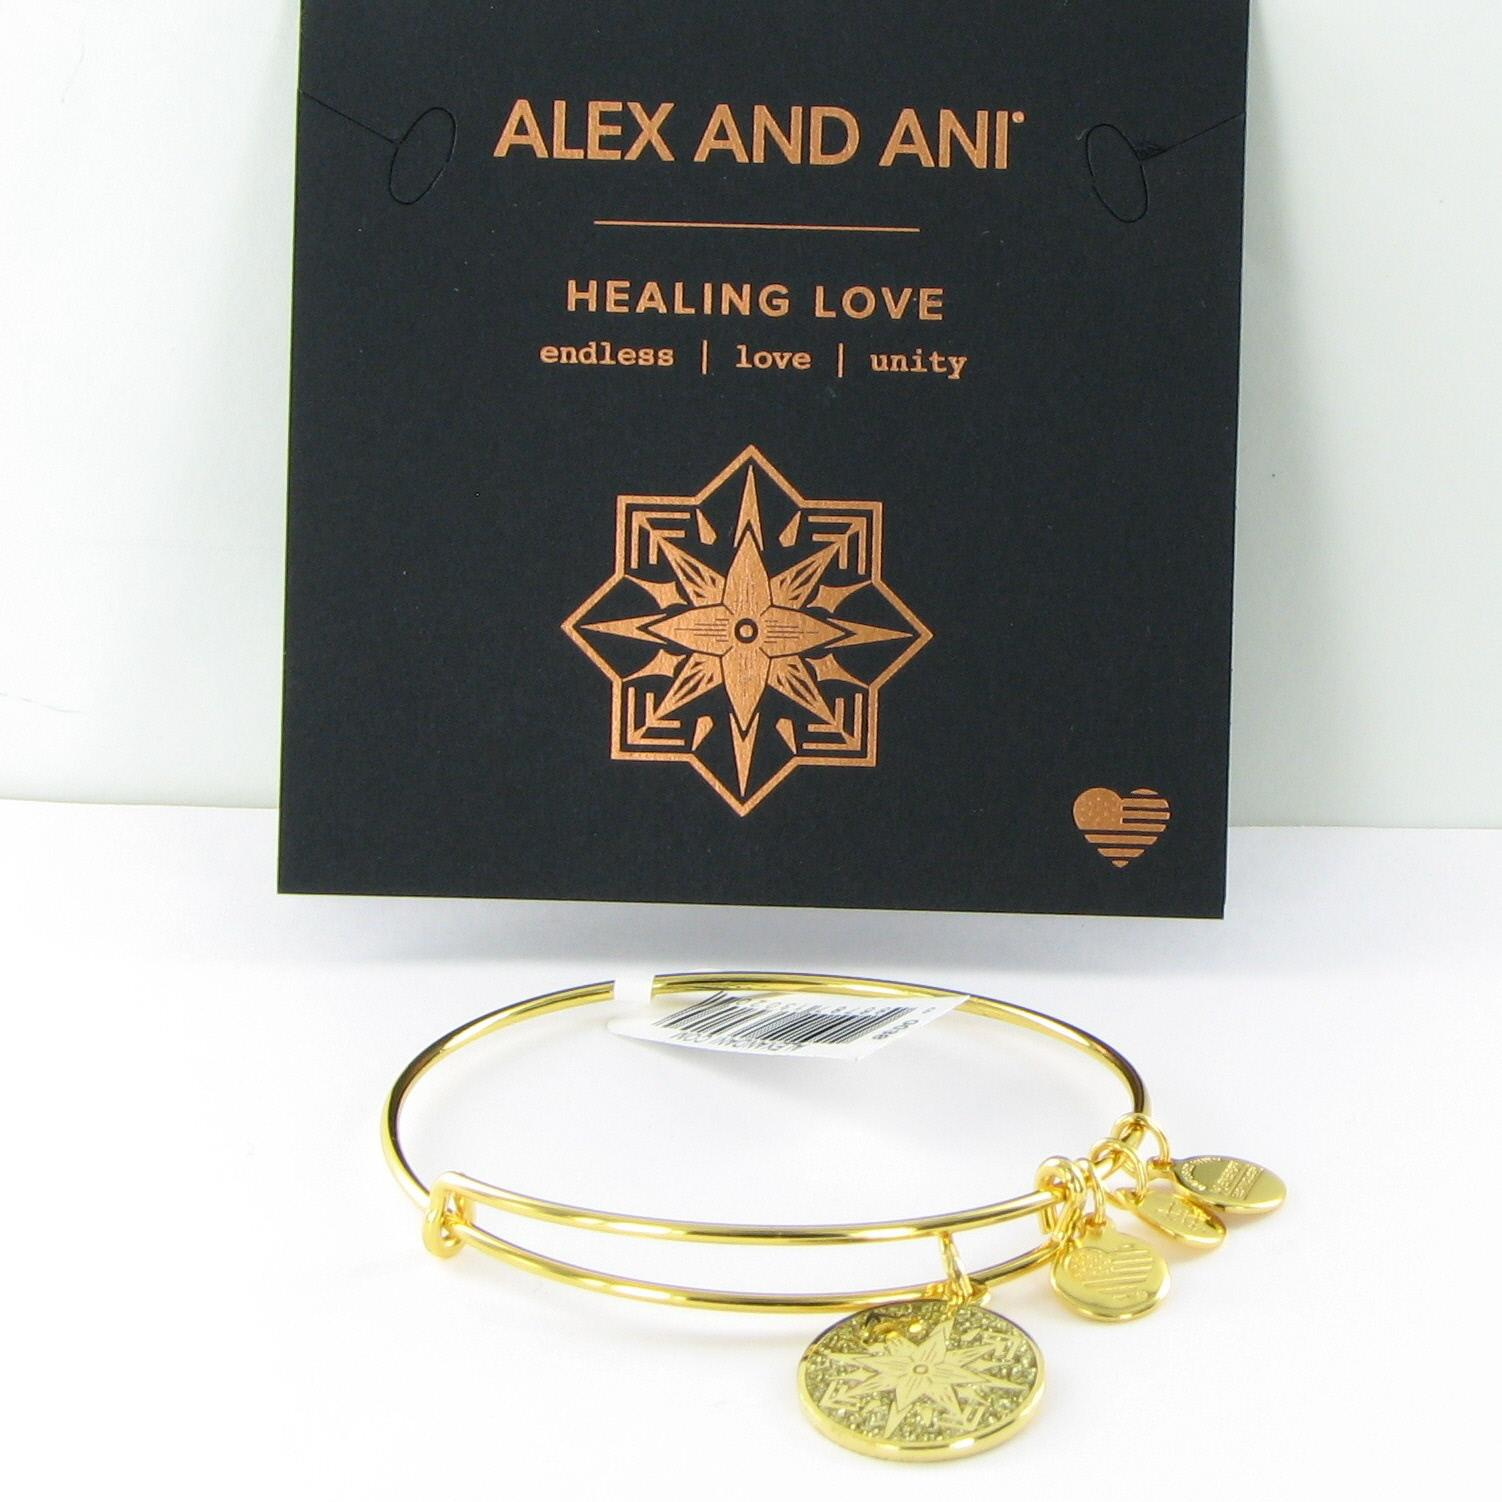 602506a22 Details about Alex and Ani Healing Love Color Infusion Bracelet A17EBHLSG  Shiny Gold NWT